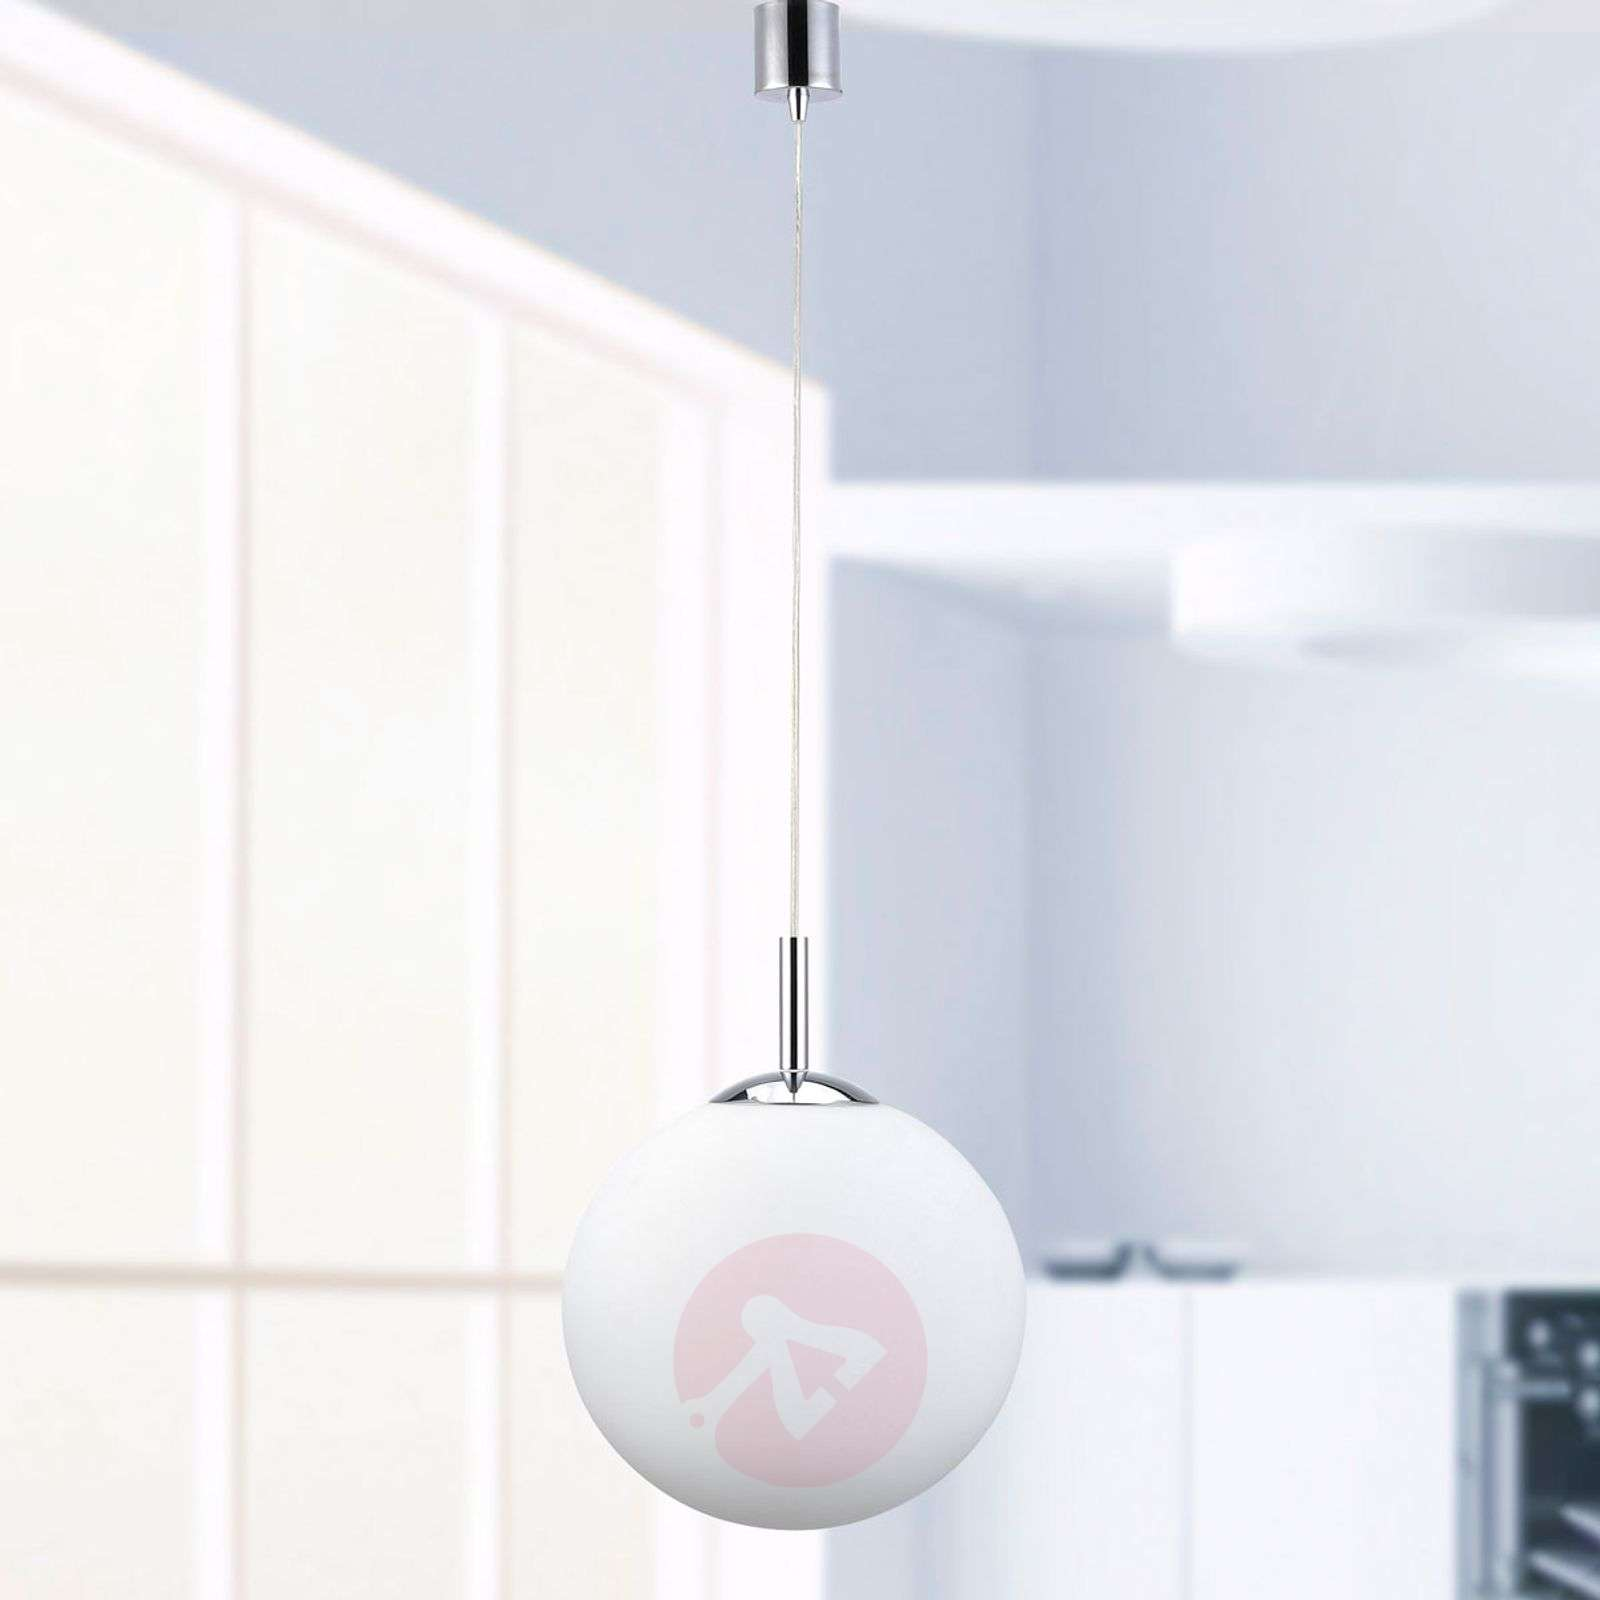 Élégante suspension LED RGBW Lola-Bolo Ø 30 cm-6002819-01